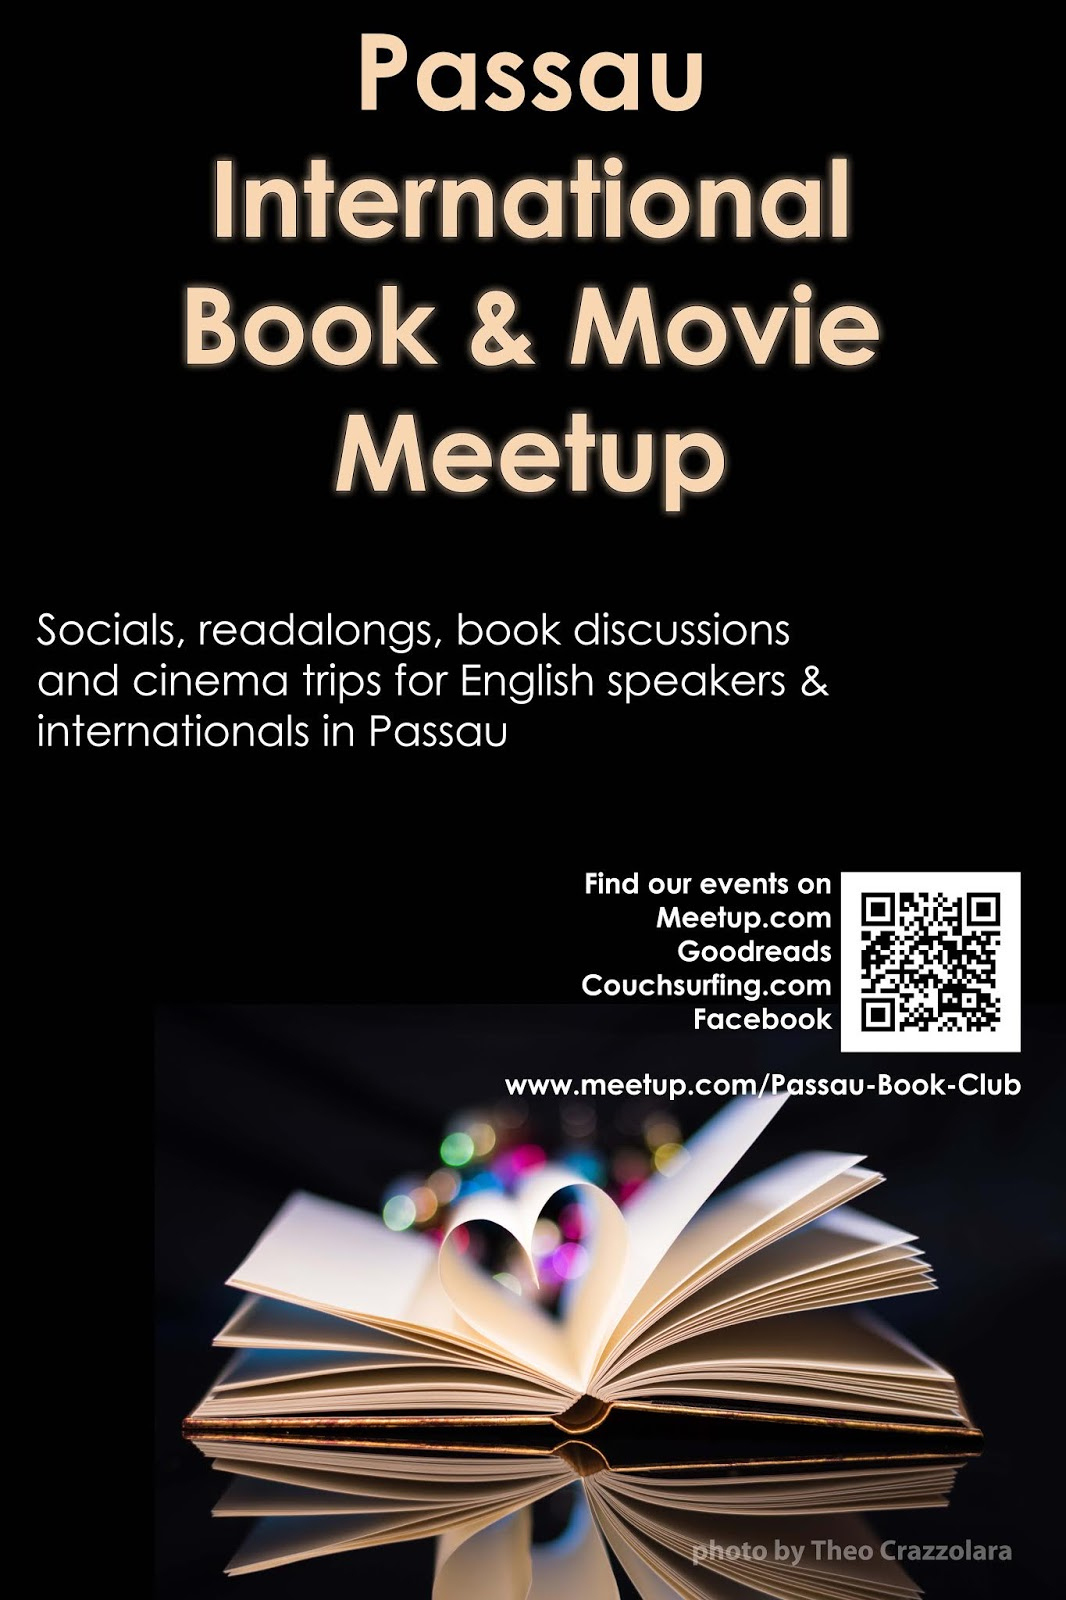 Passau International Book & Movie Club